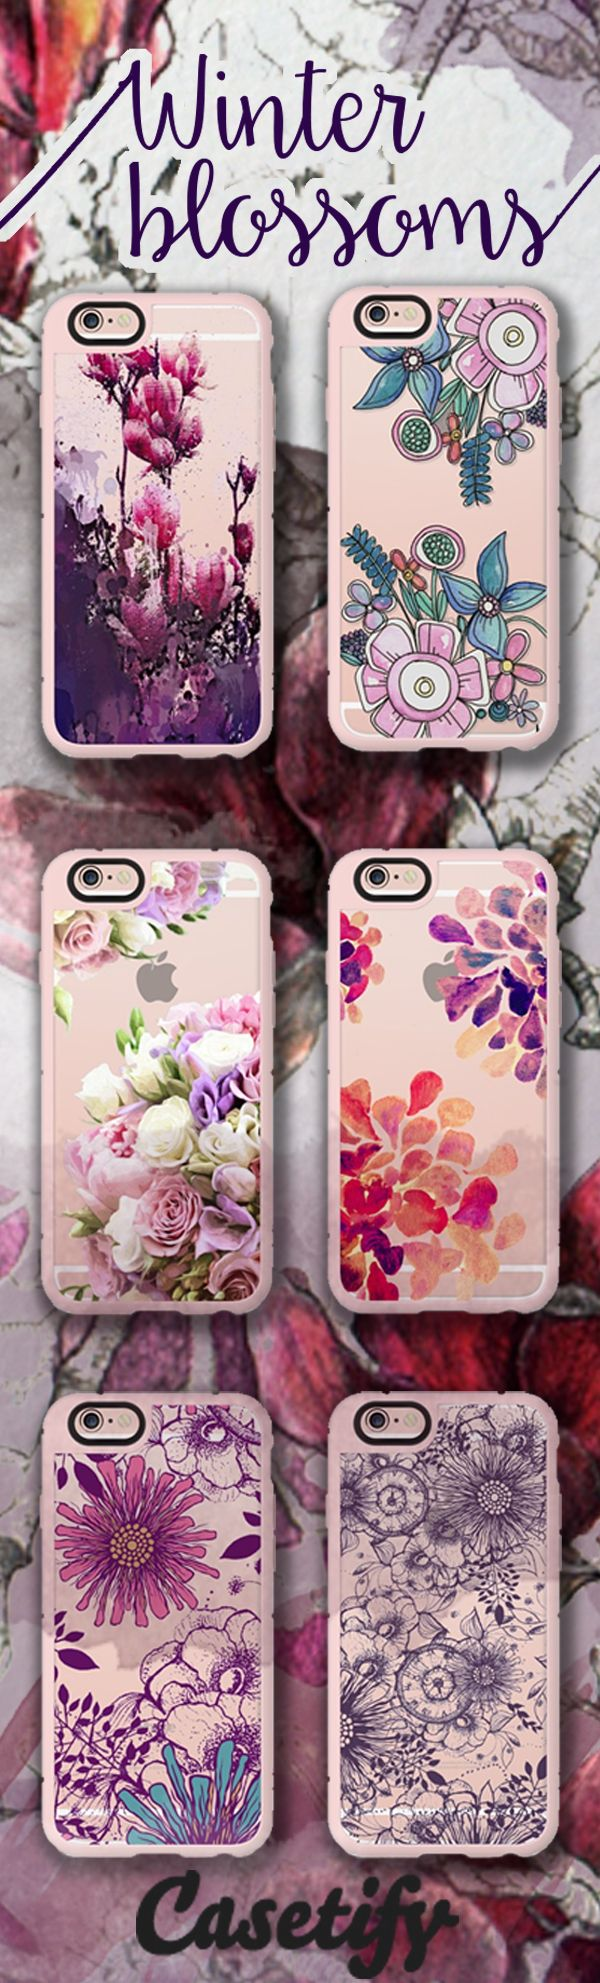 Winter in Full Bloom. Shop these New Standard cases for your iPhone 6S here - http://www.casetify.com/artworks/jJQlUwM5OJ